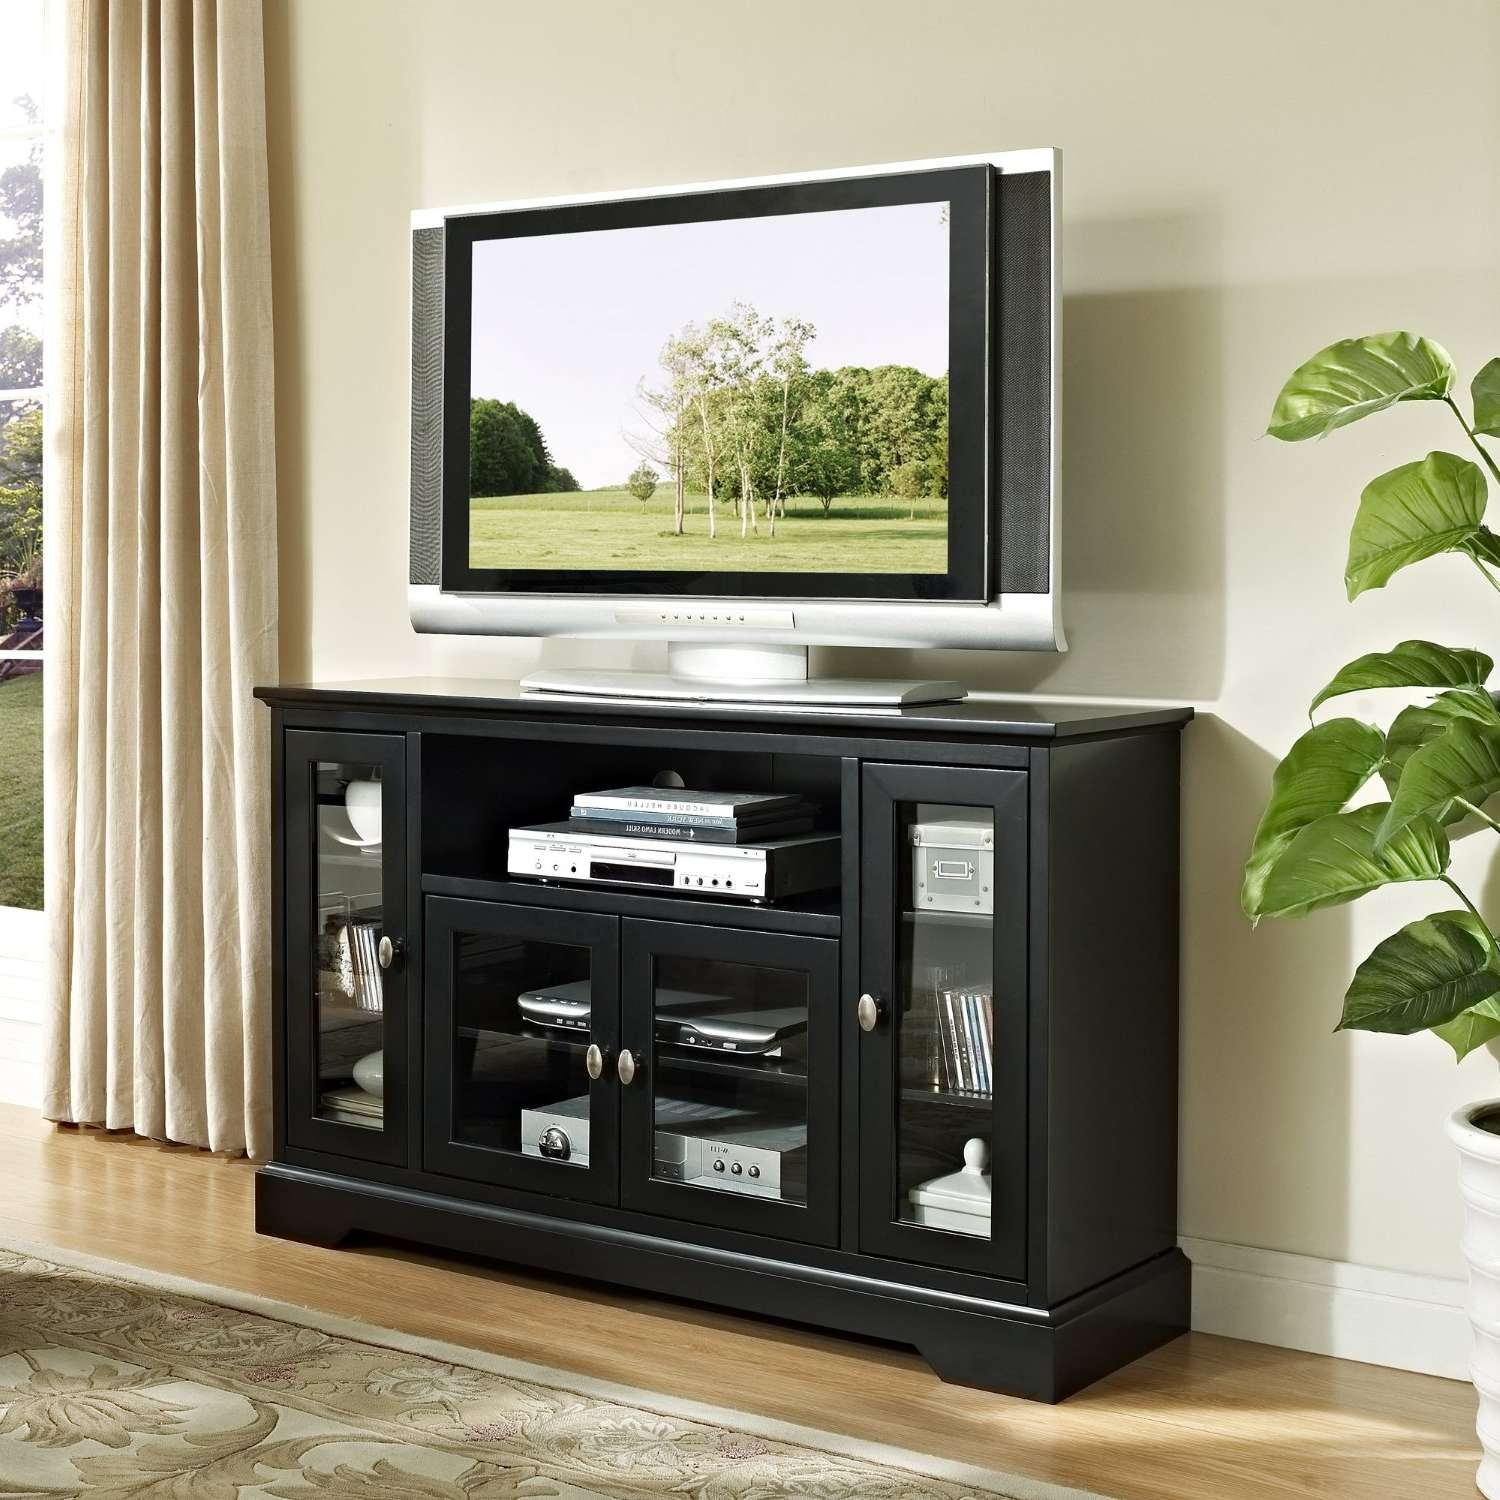 Light Wood Tv Stand Simple Room With Ikea Besta Media Cabinet Of Regarding Wood Tv Stands With Glass (View 11 of 15)